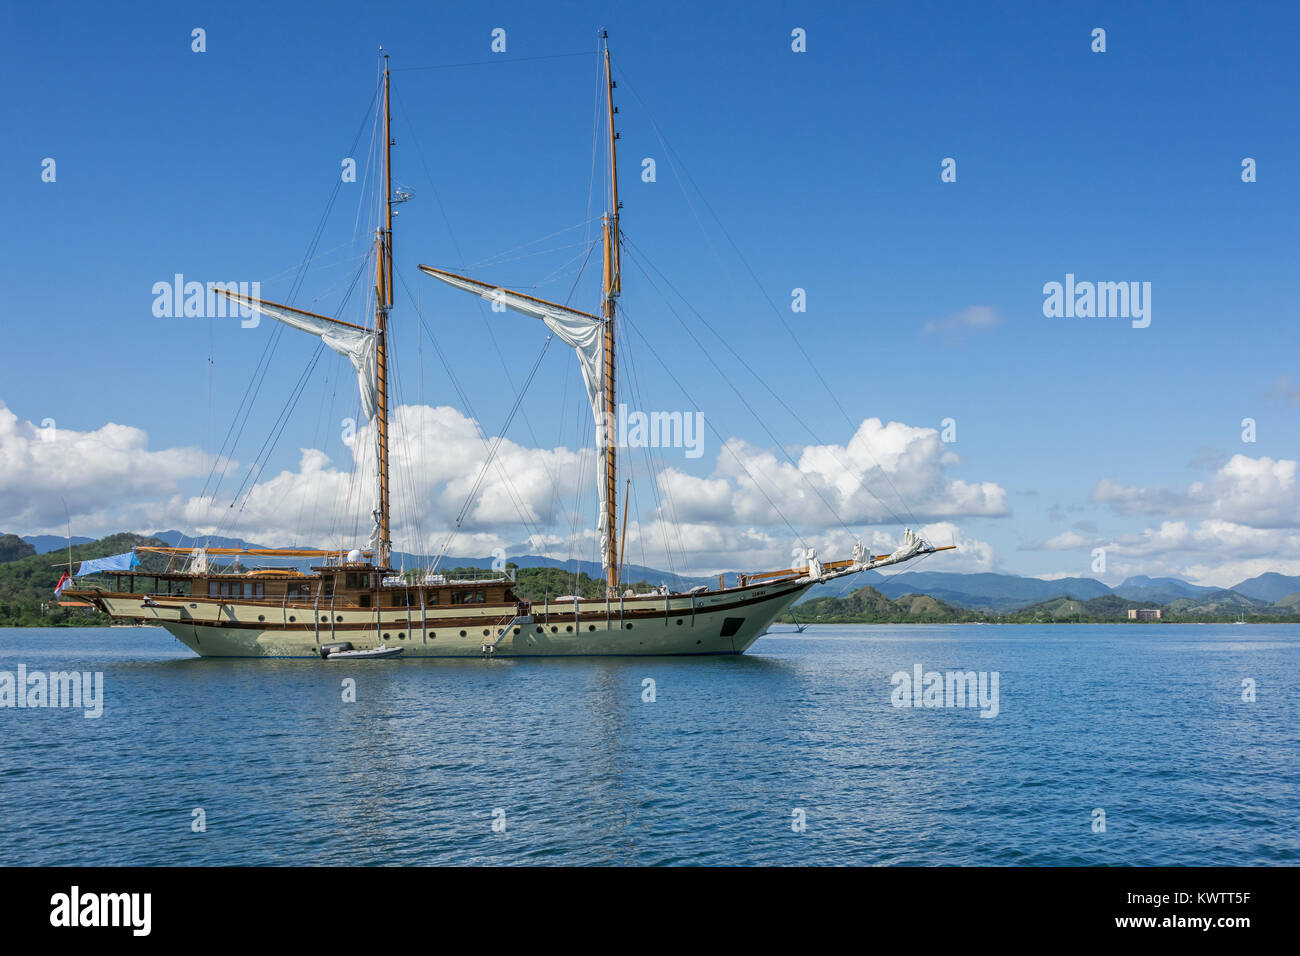 Sailing ketch Lamima off Labuan Bajo, West Flores Island, Indonesia - Stock Image